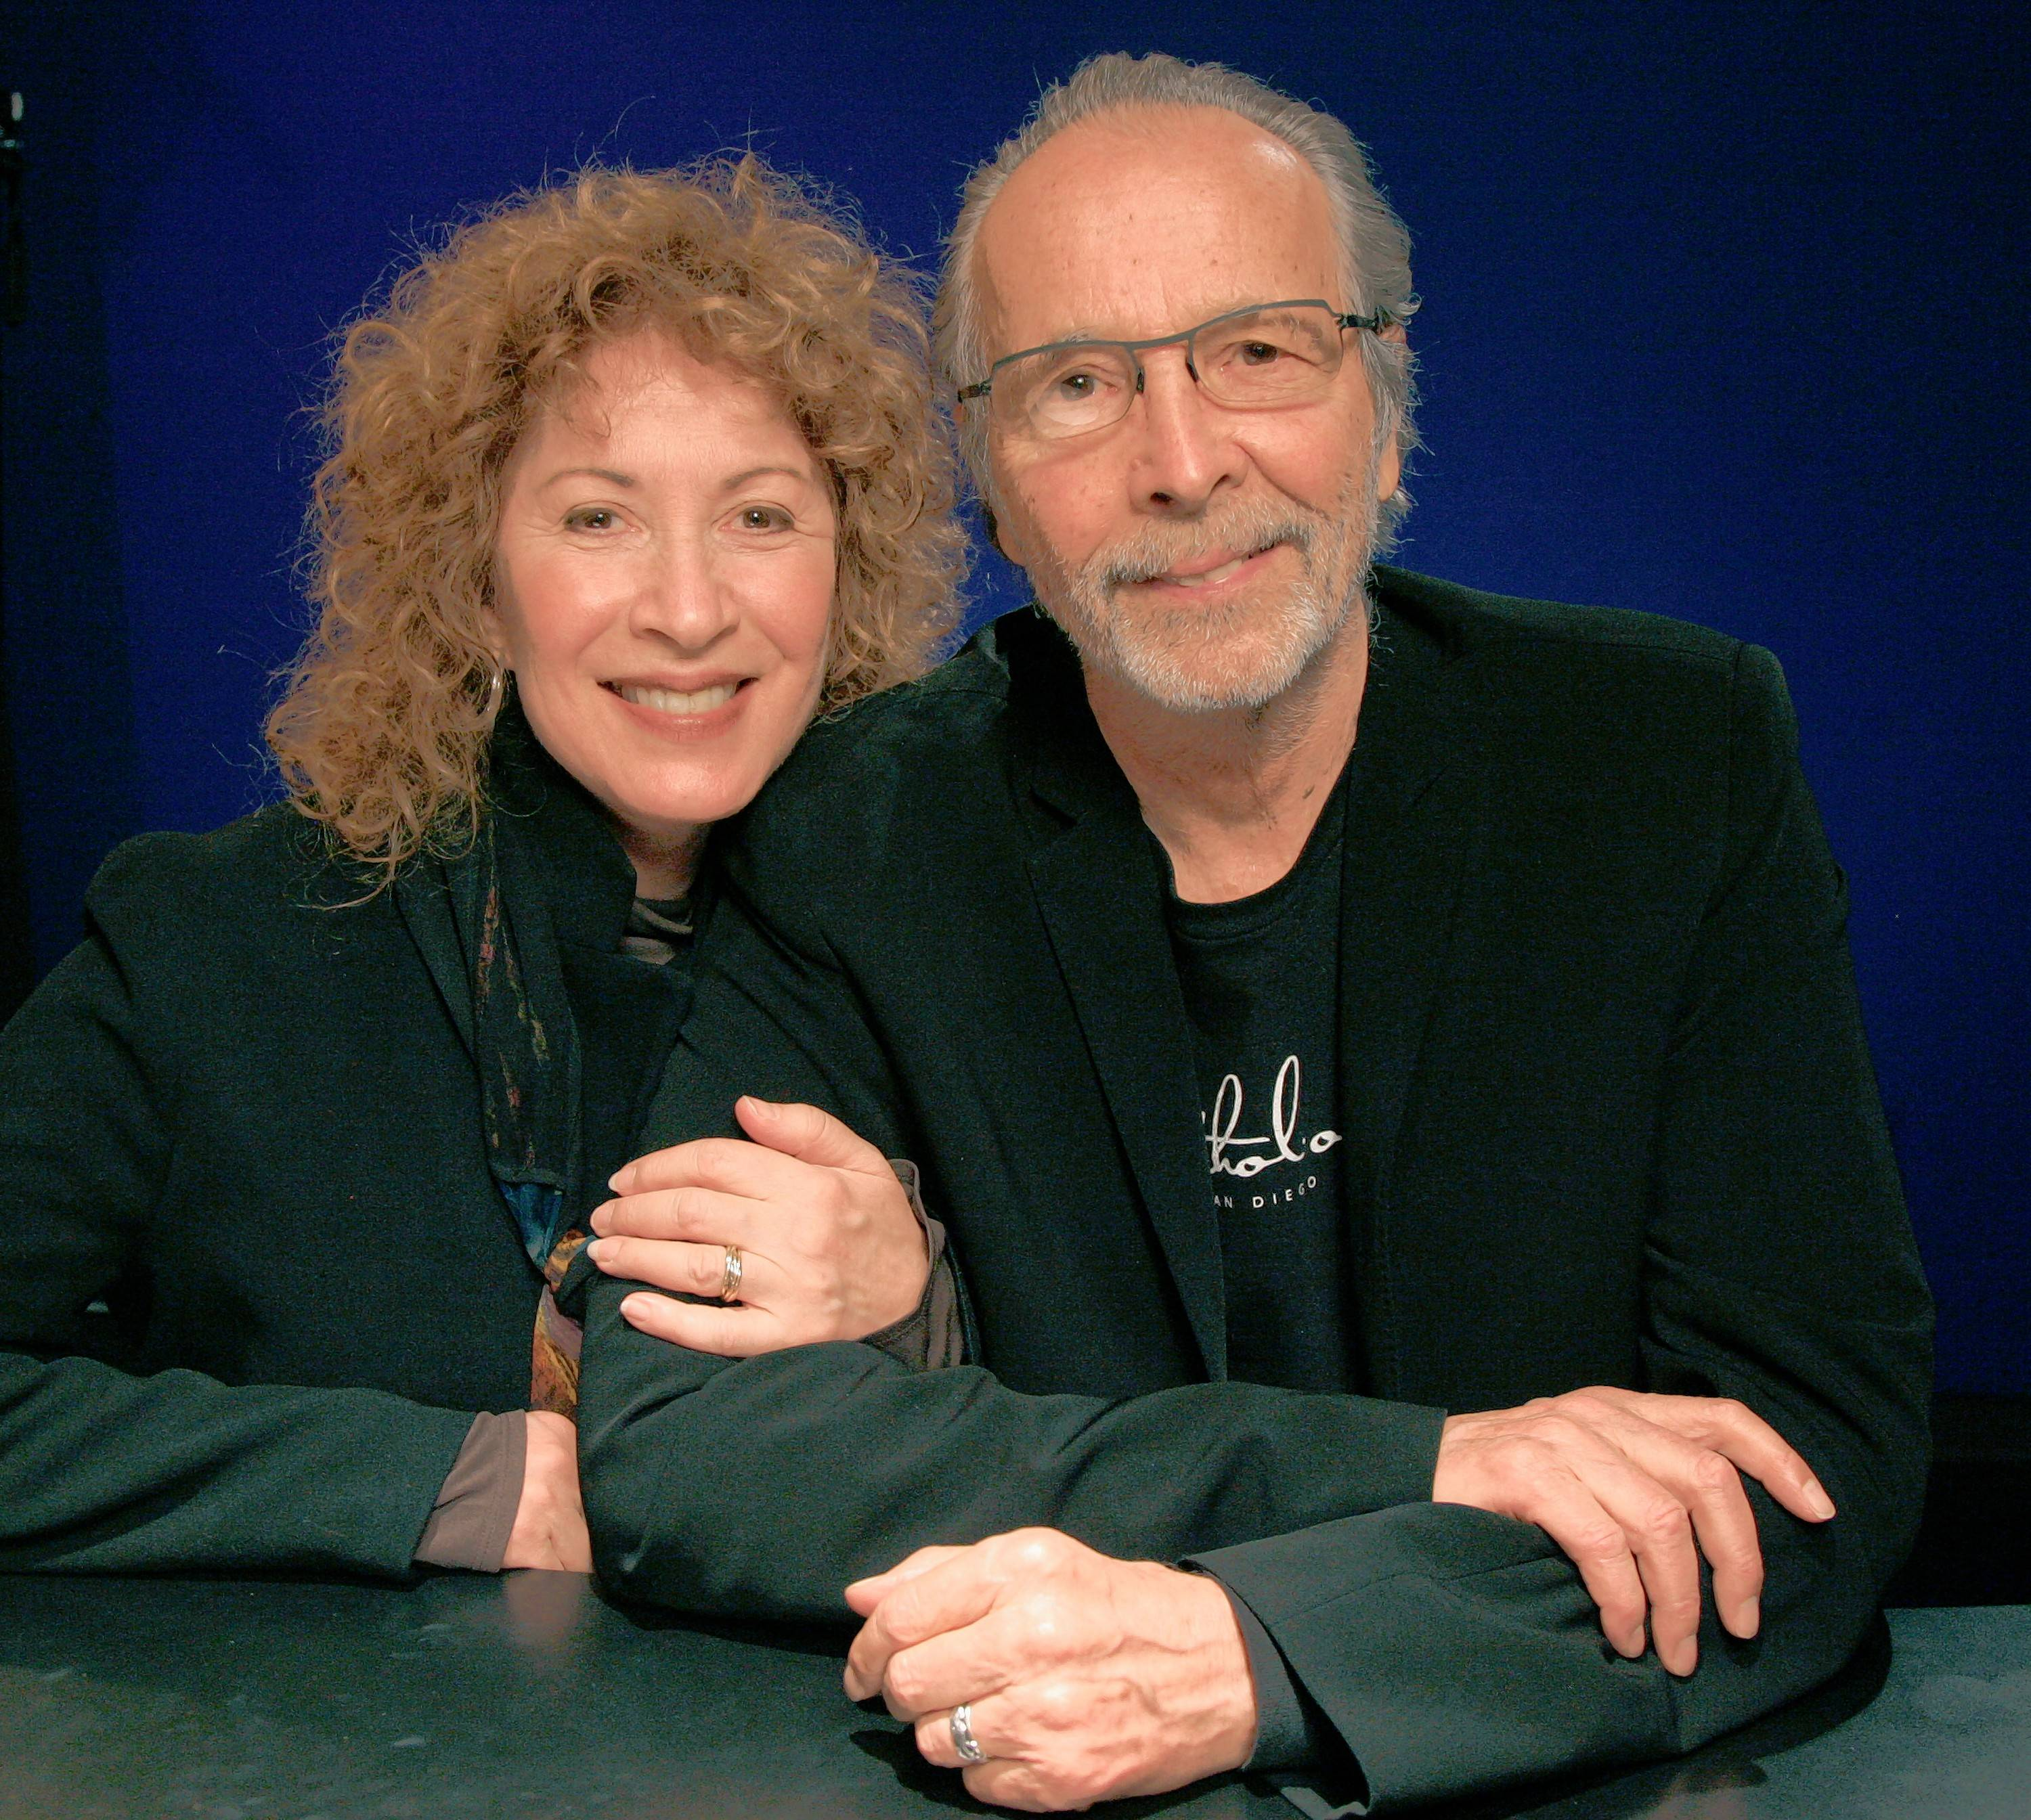 Lani Hall and Herb Albert return to perform at City Winery in Chicago on Saturday and Sunday, May 4 and 5.